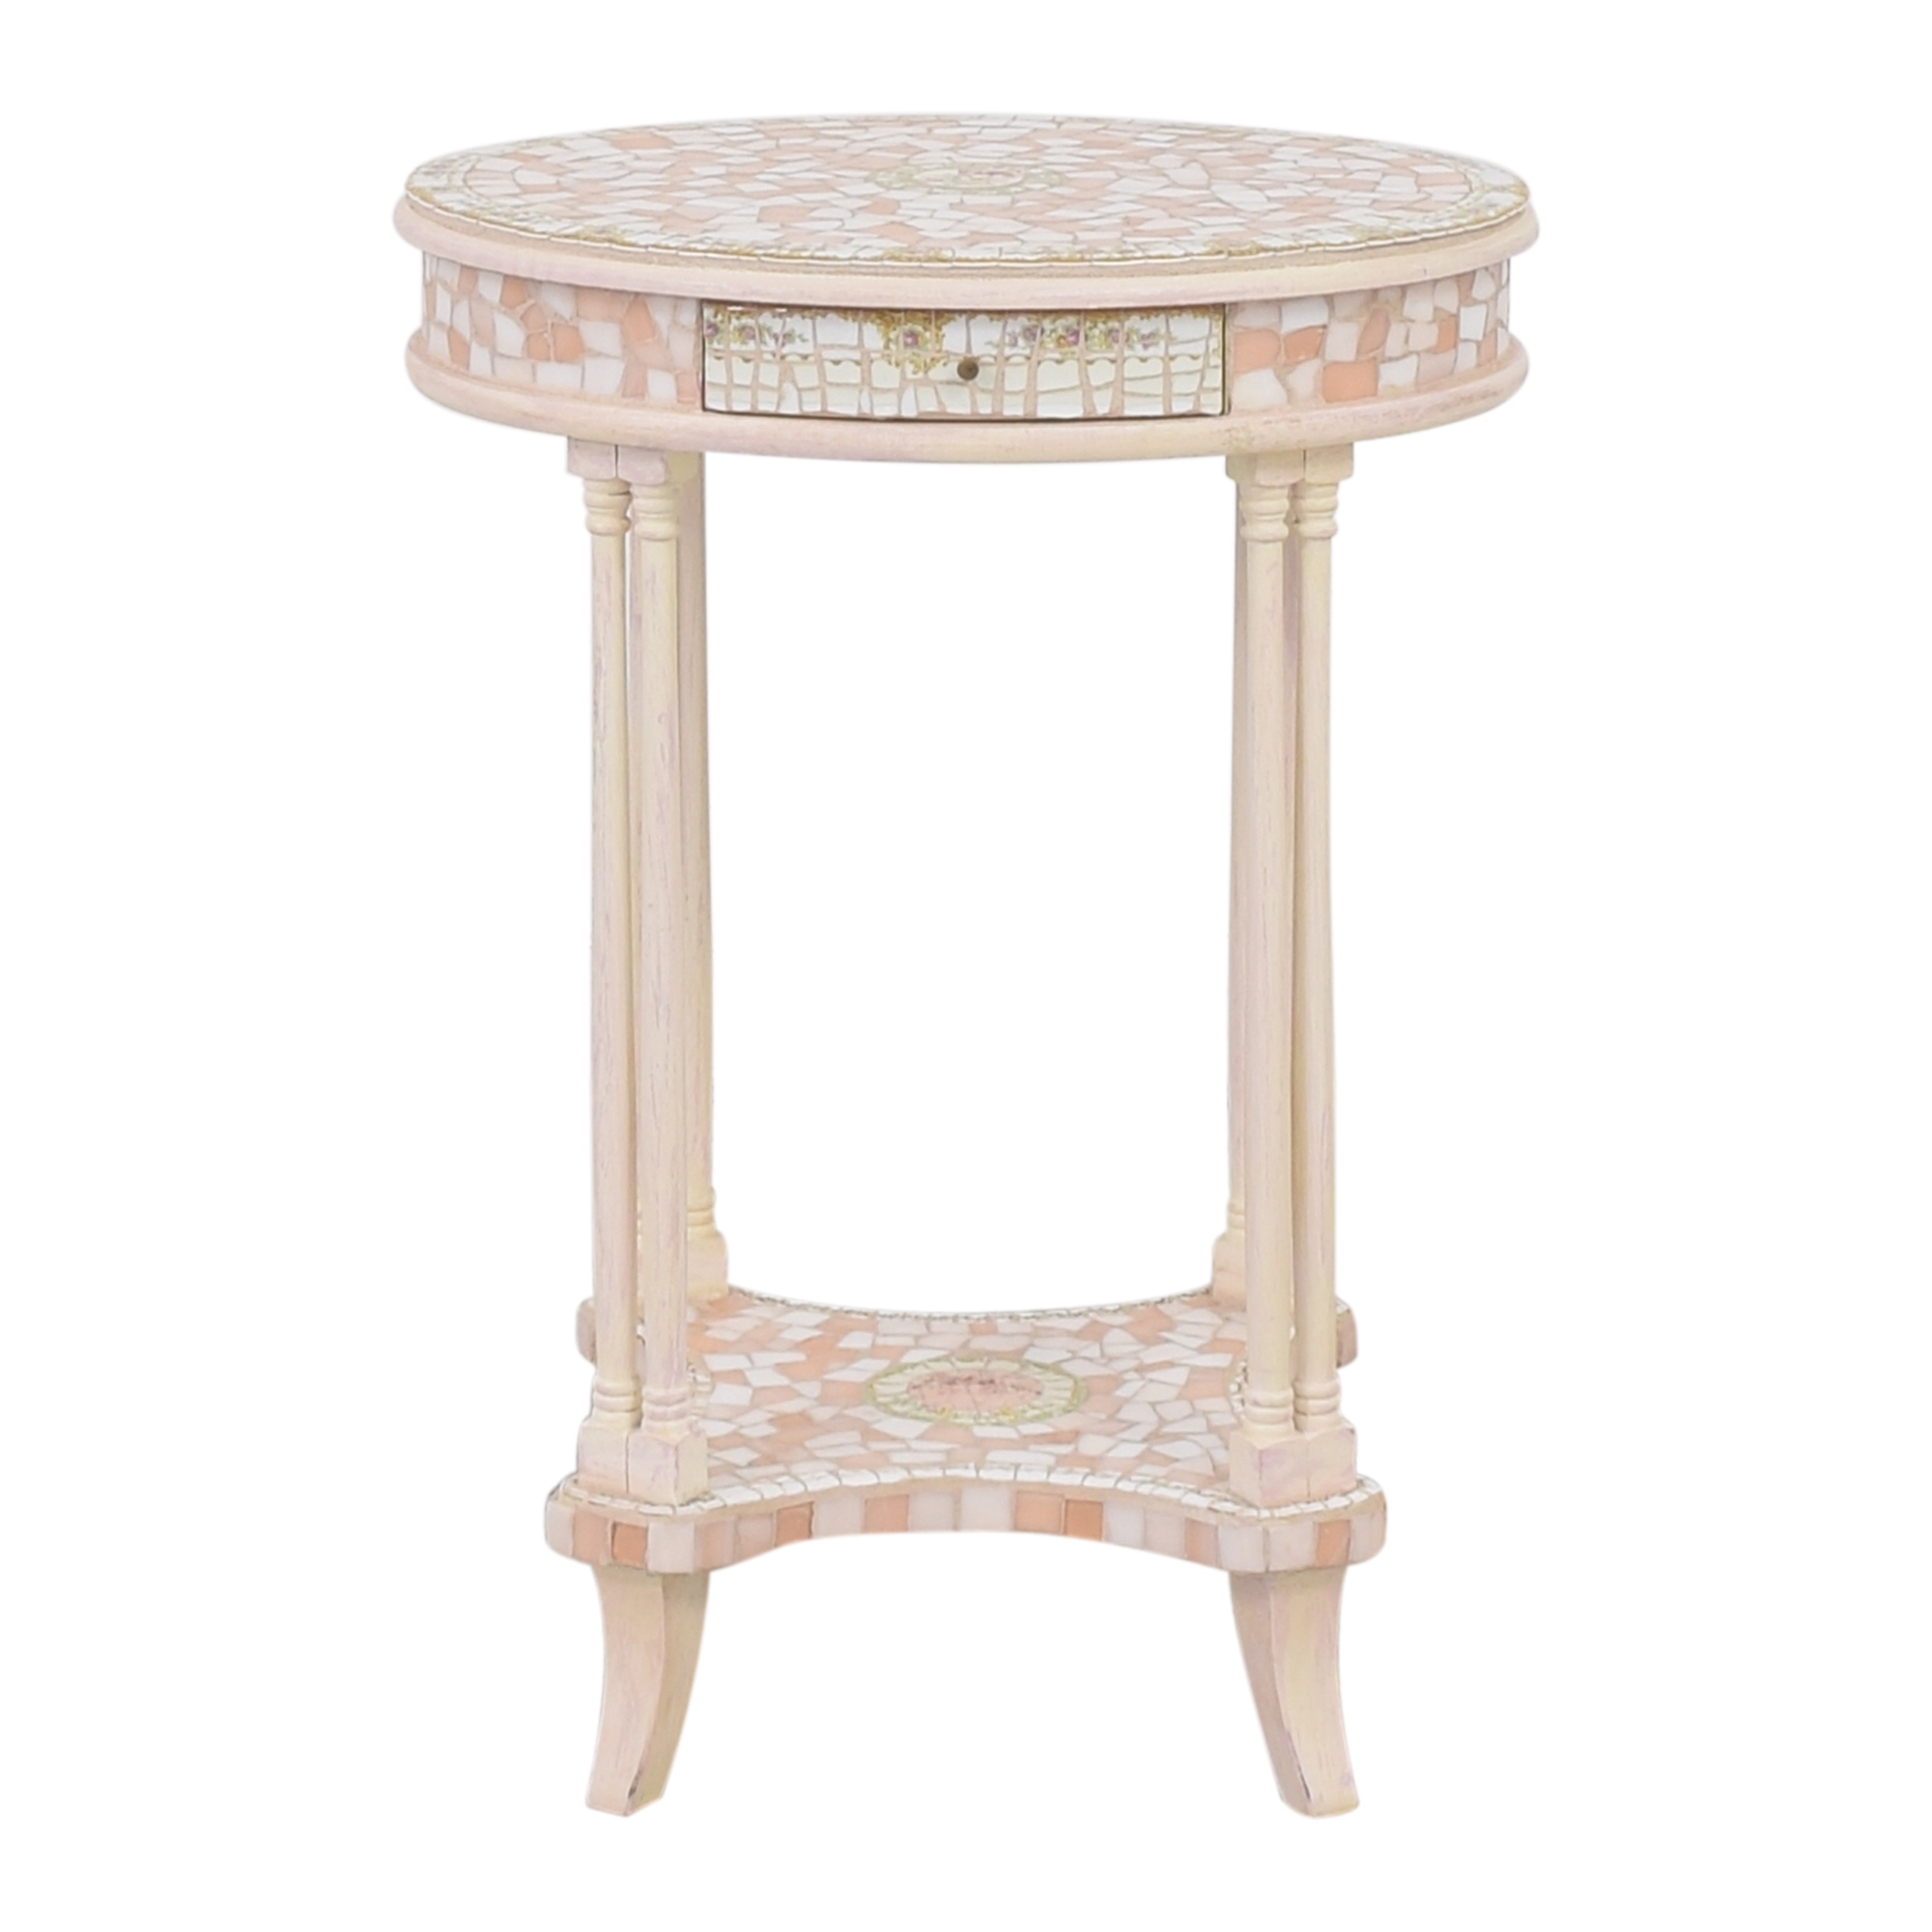 Mosaic Round End Table / Tables